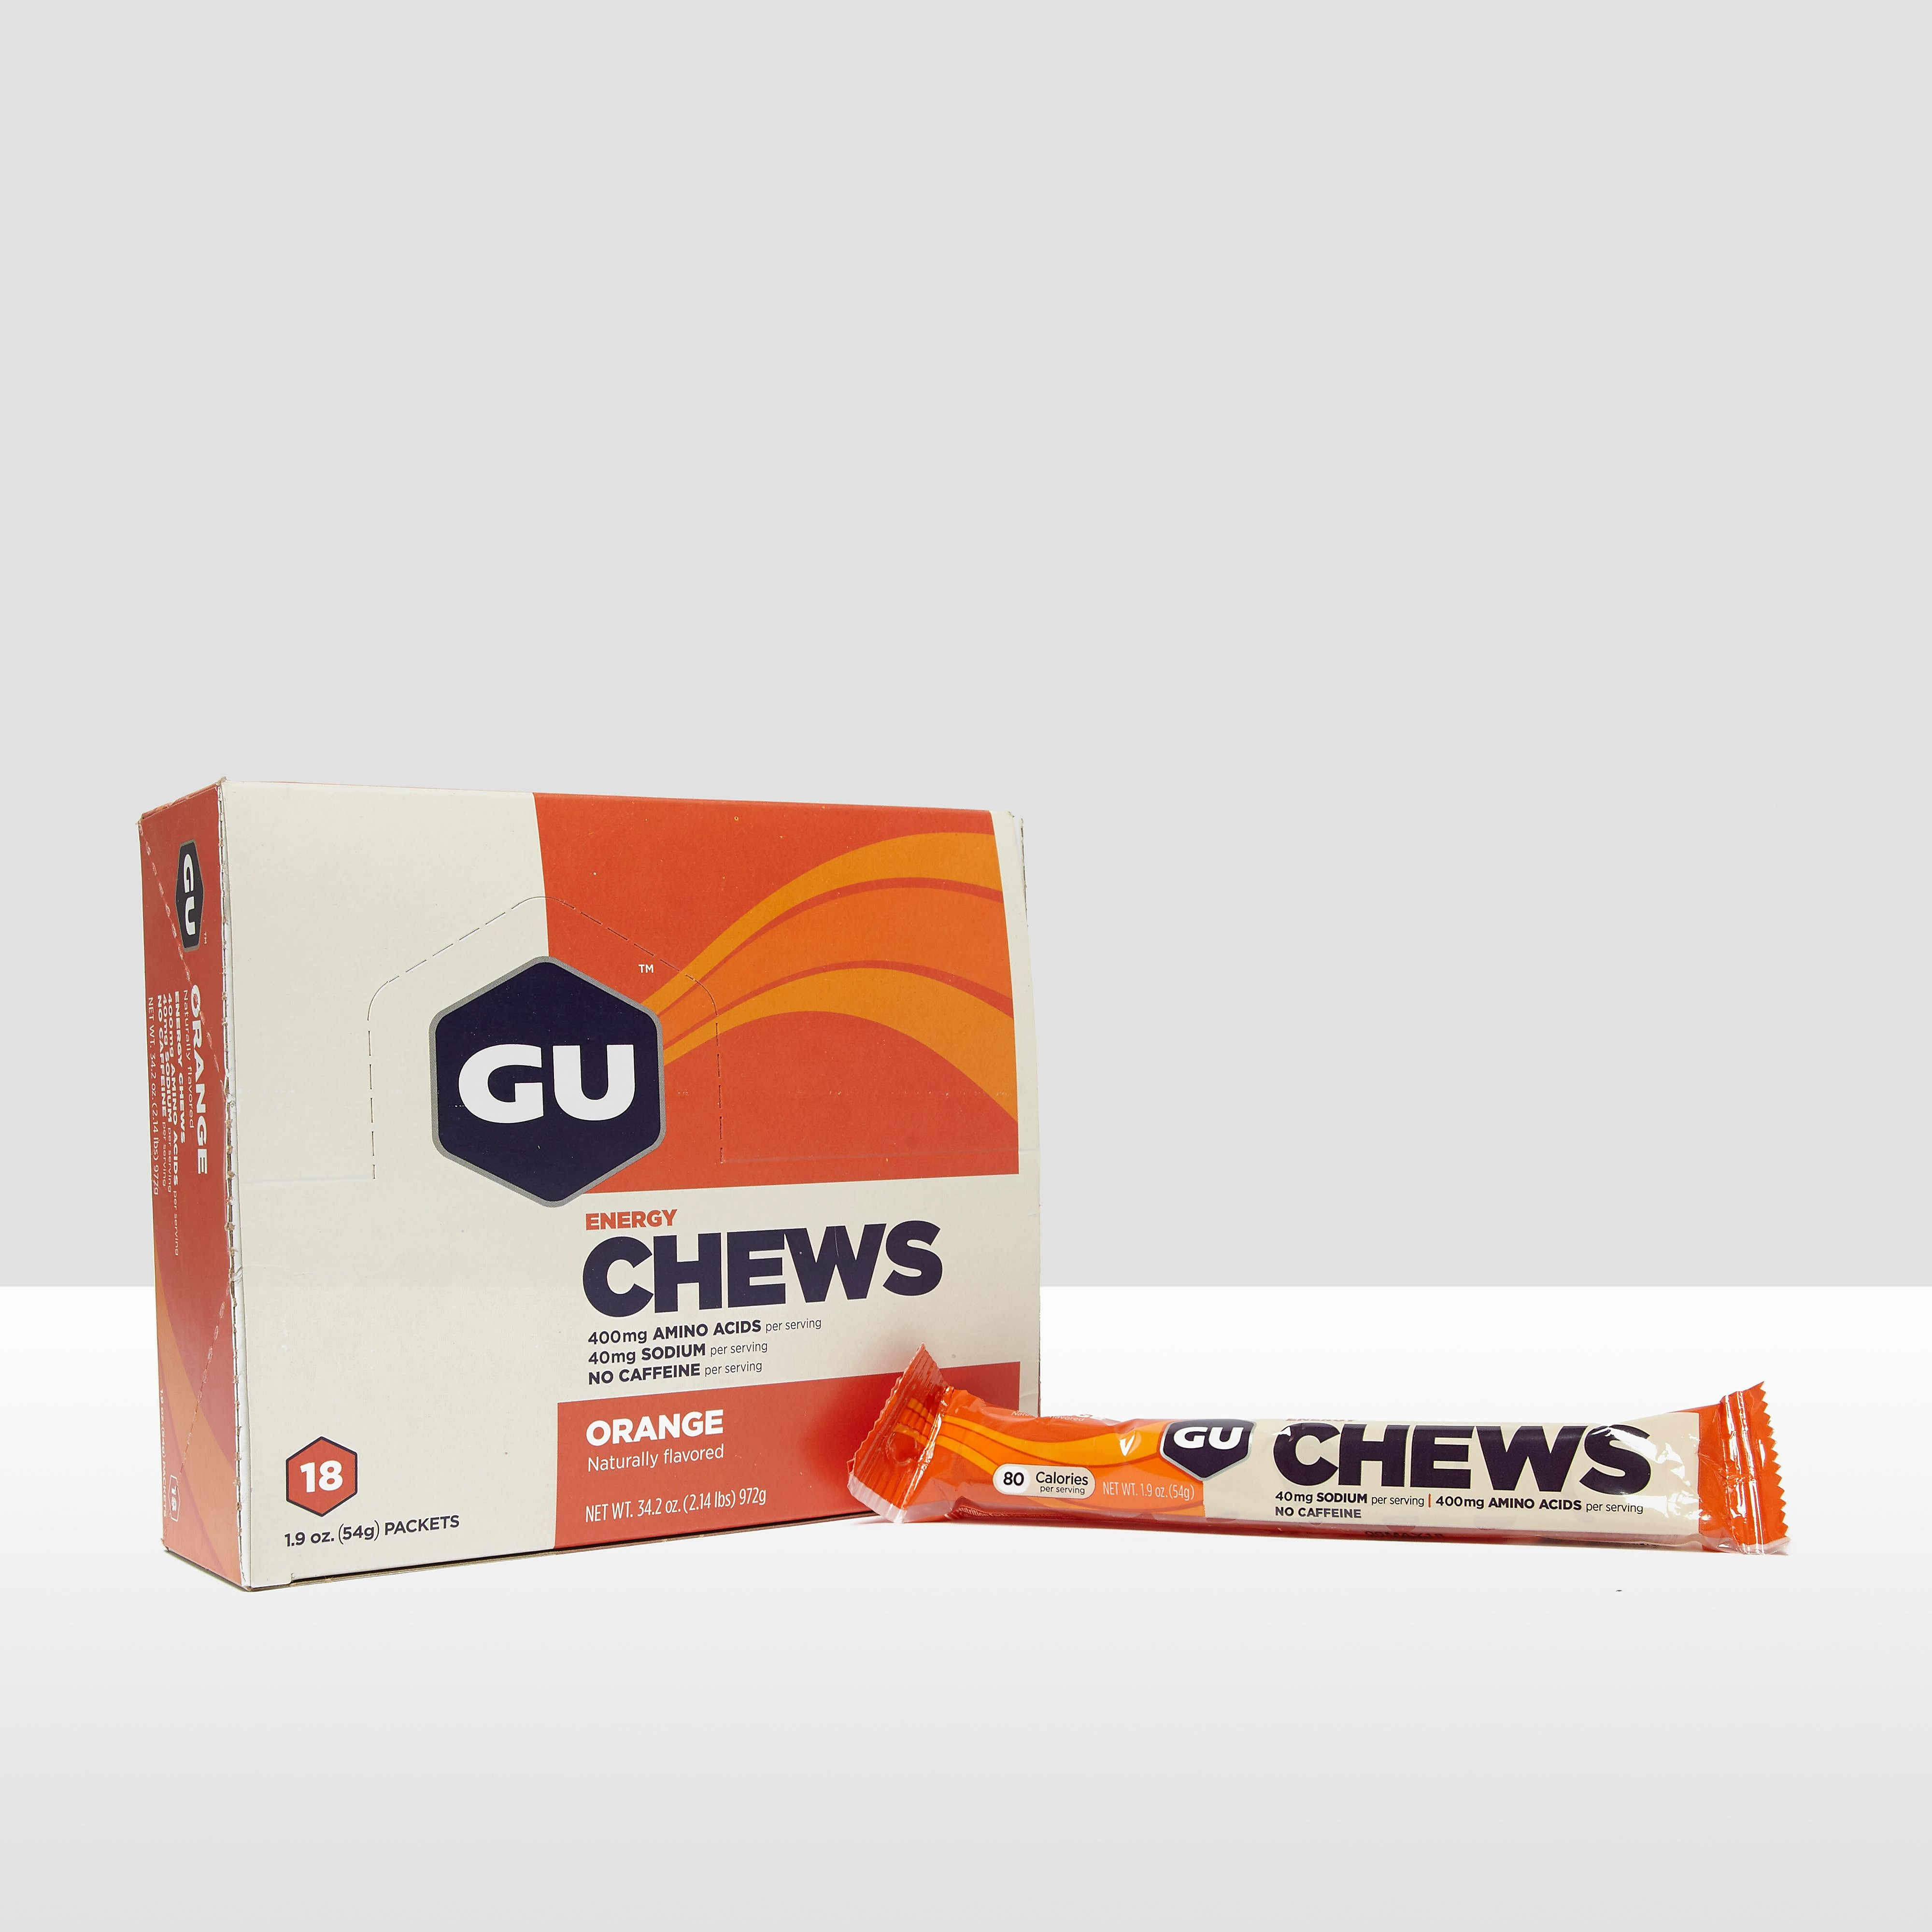 GU Energy Chews (18 Pack) - Orange